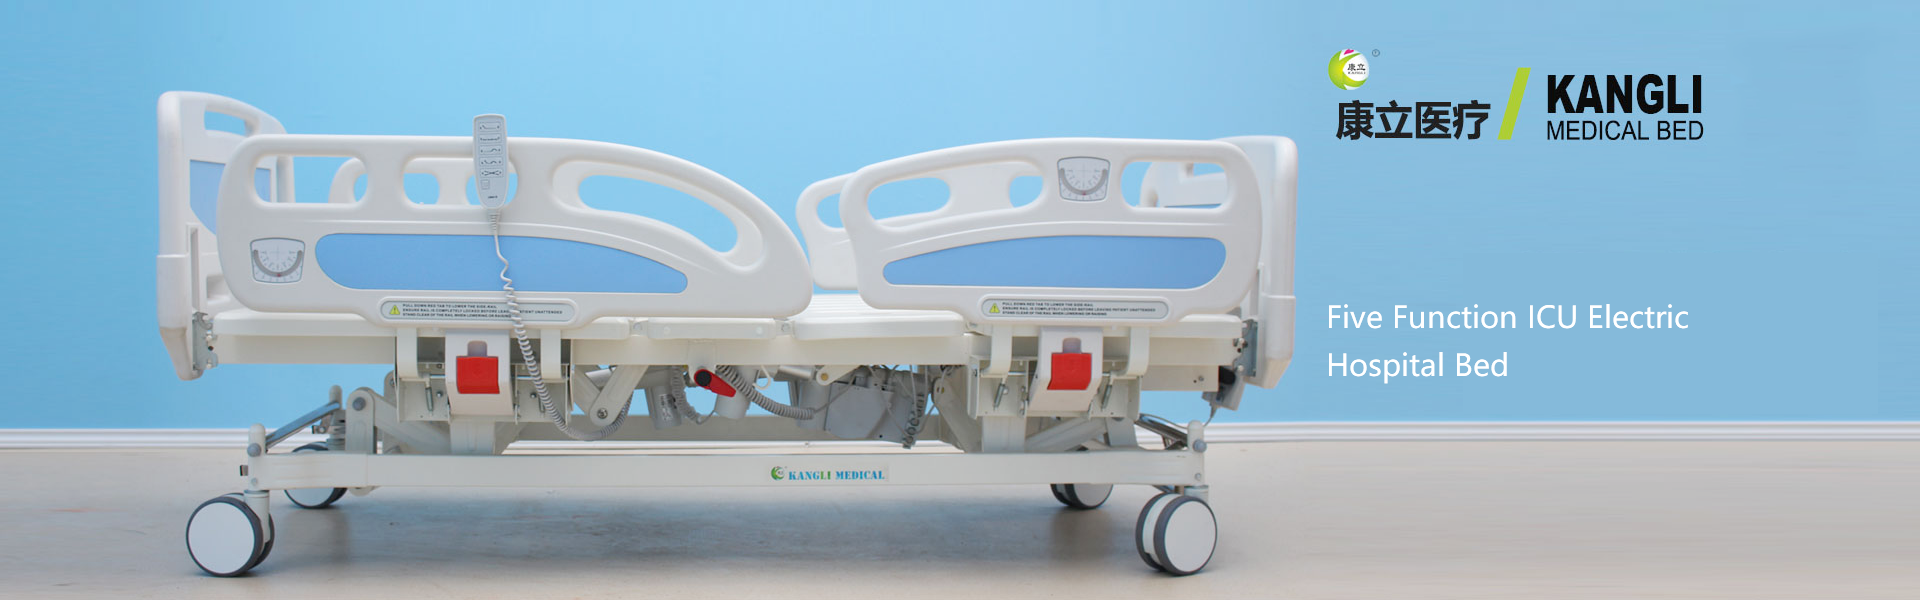 kangli icu electric bed